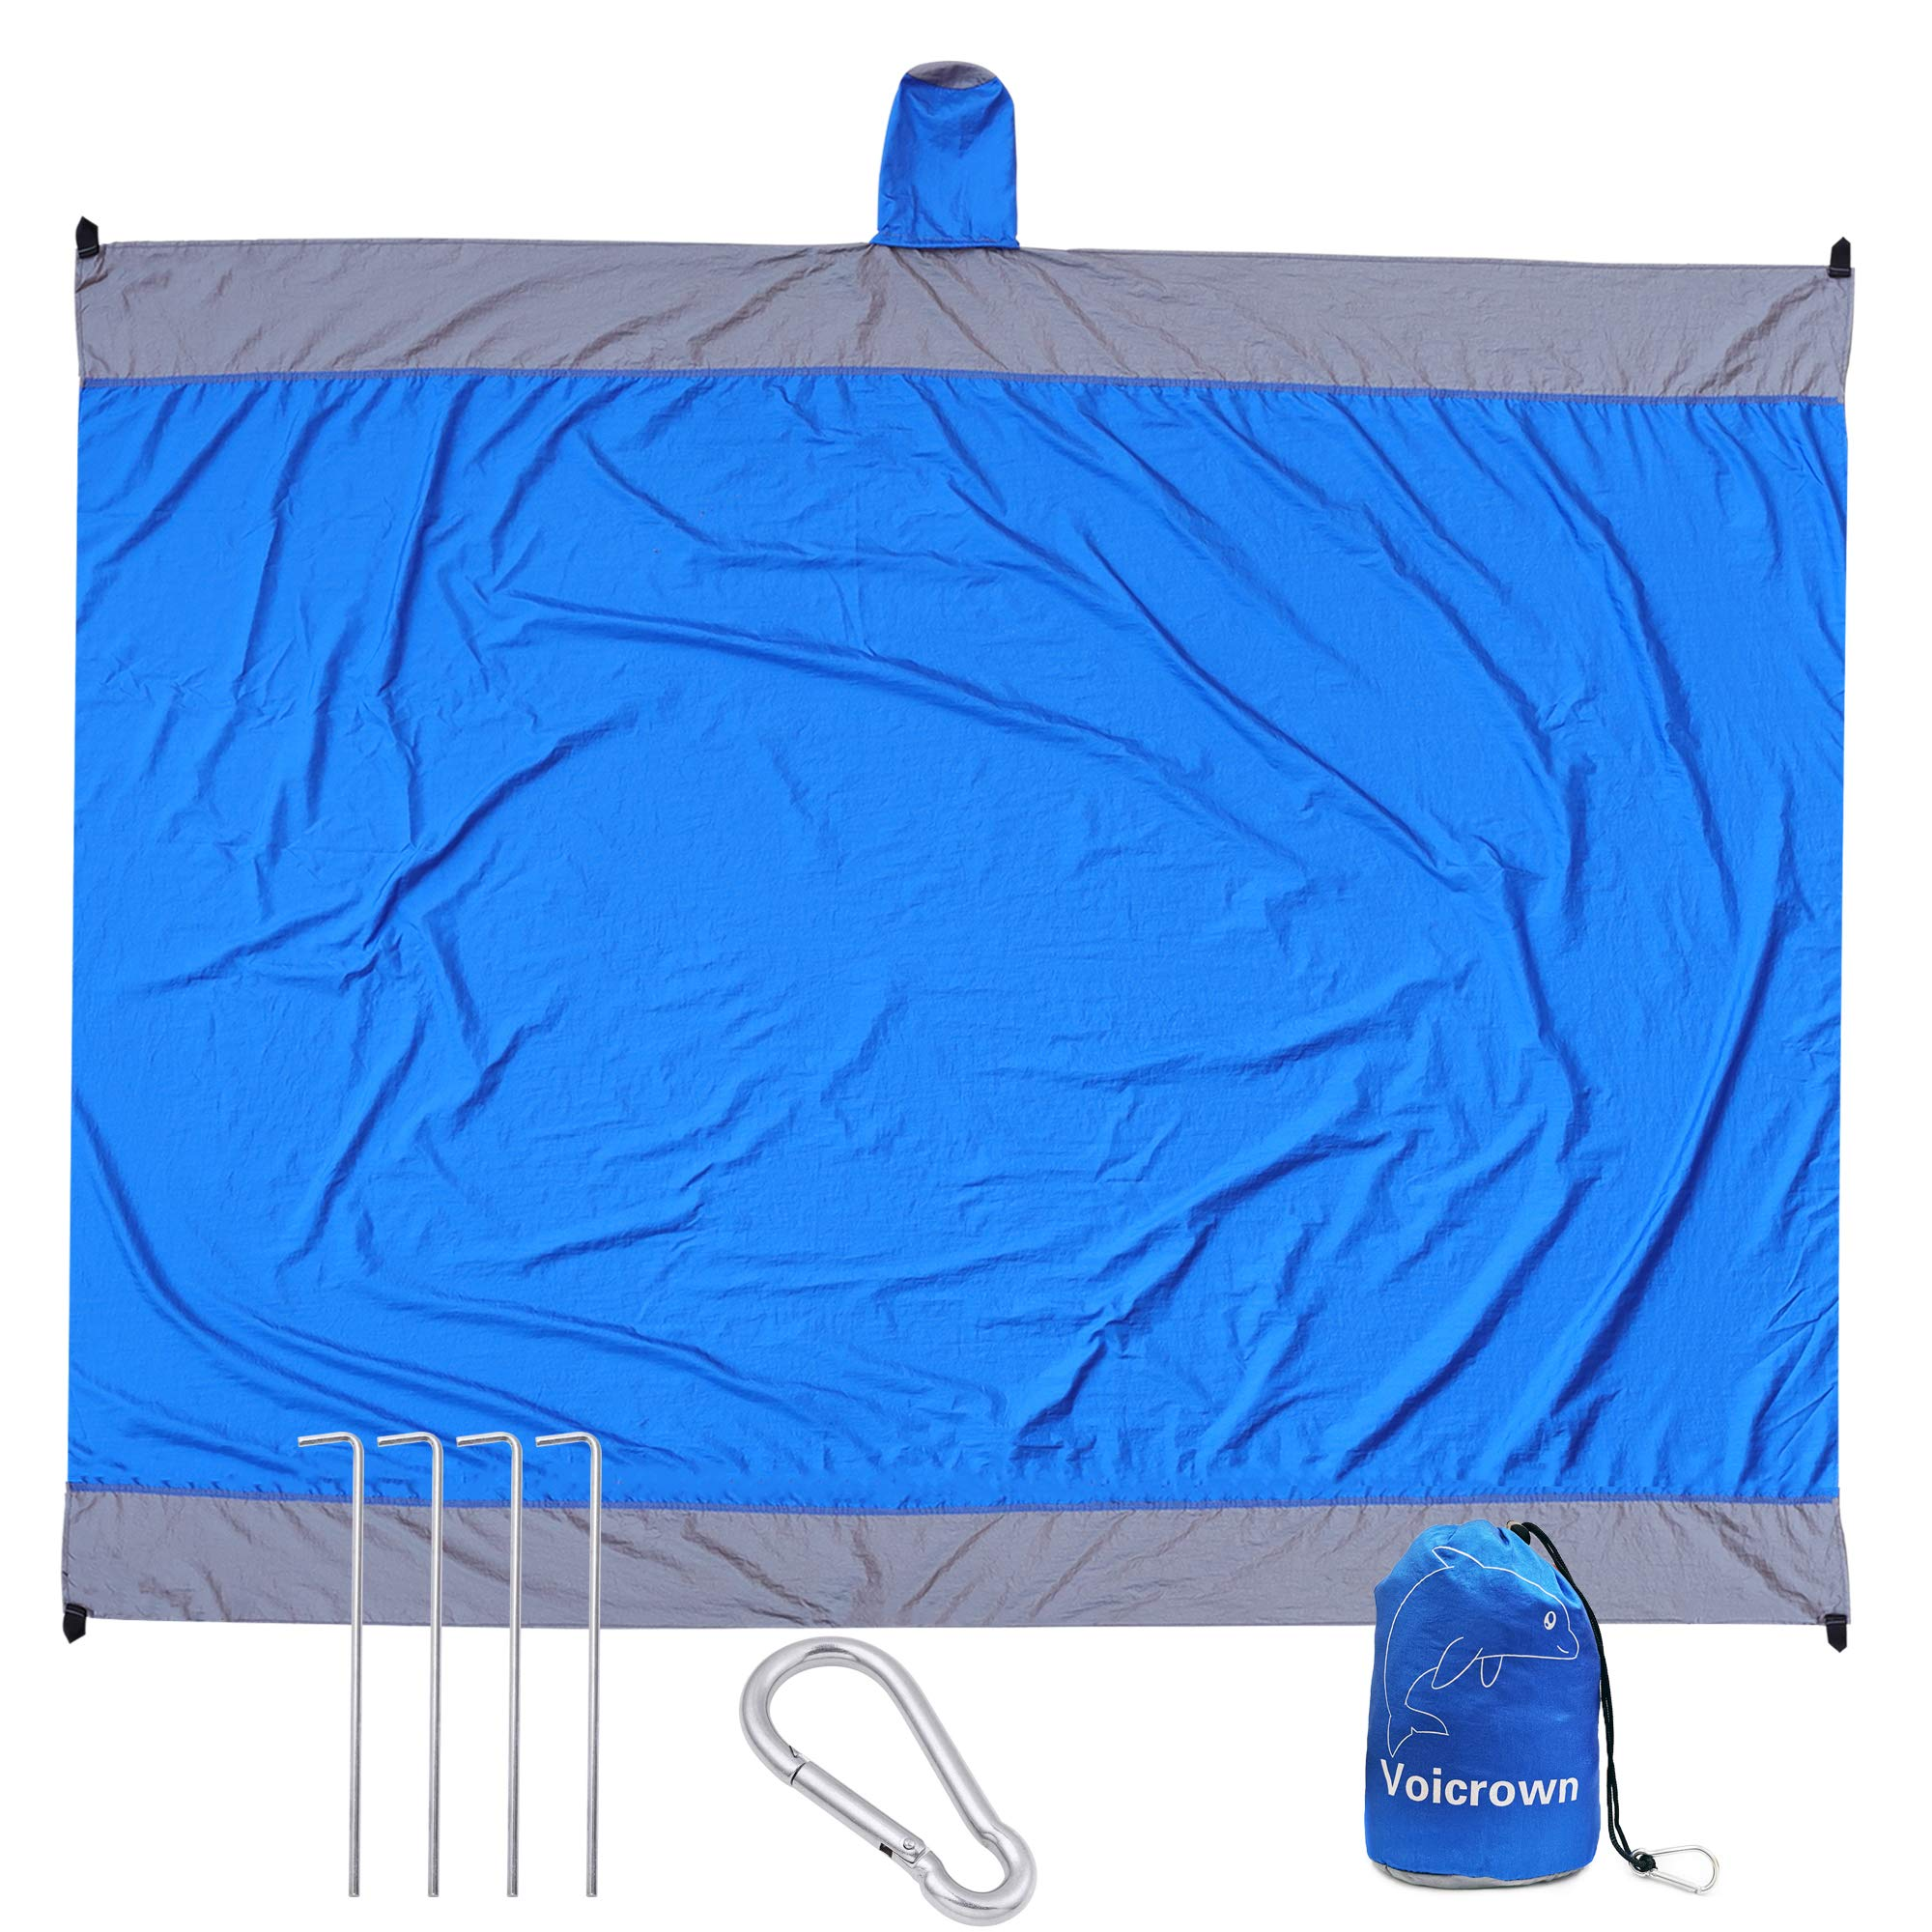 Hiking Compact Pocket Blanket for Beach,Travel RainRider Outdoor Beach Blanket,Waterproof Picnic Blanket//Sand Proof Beach Mat 79/″x79/″ Festival Camping Blue Sports